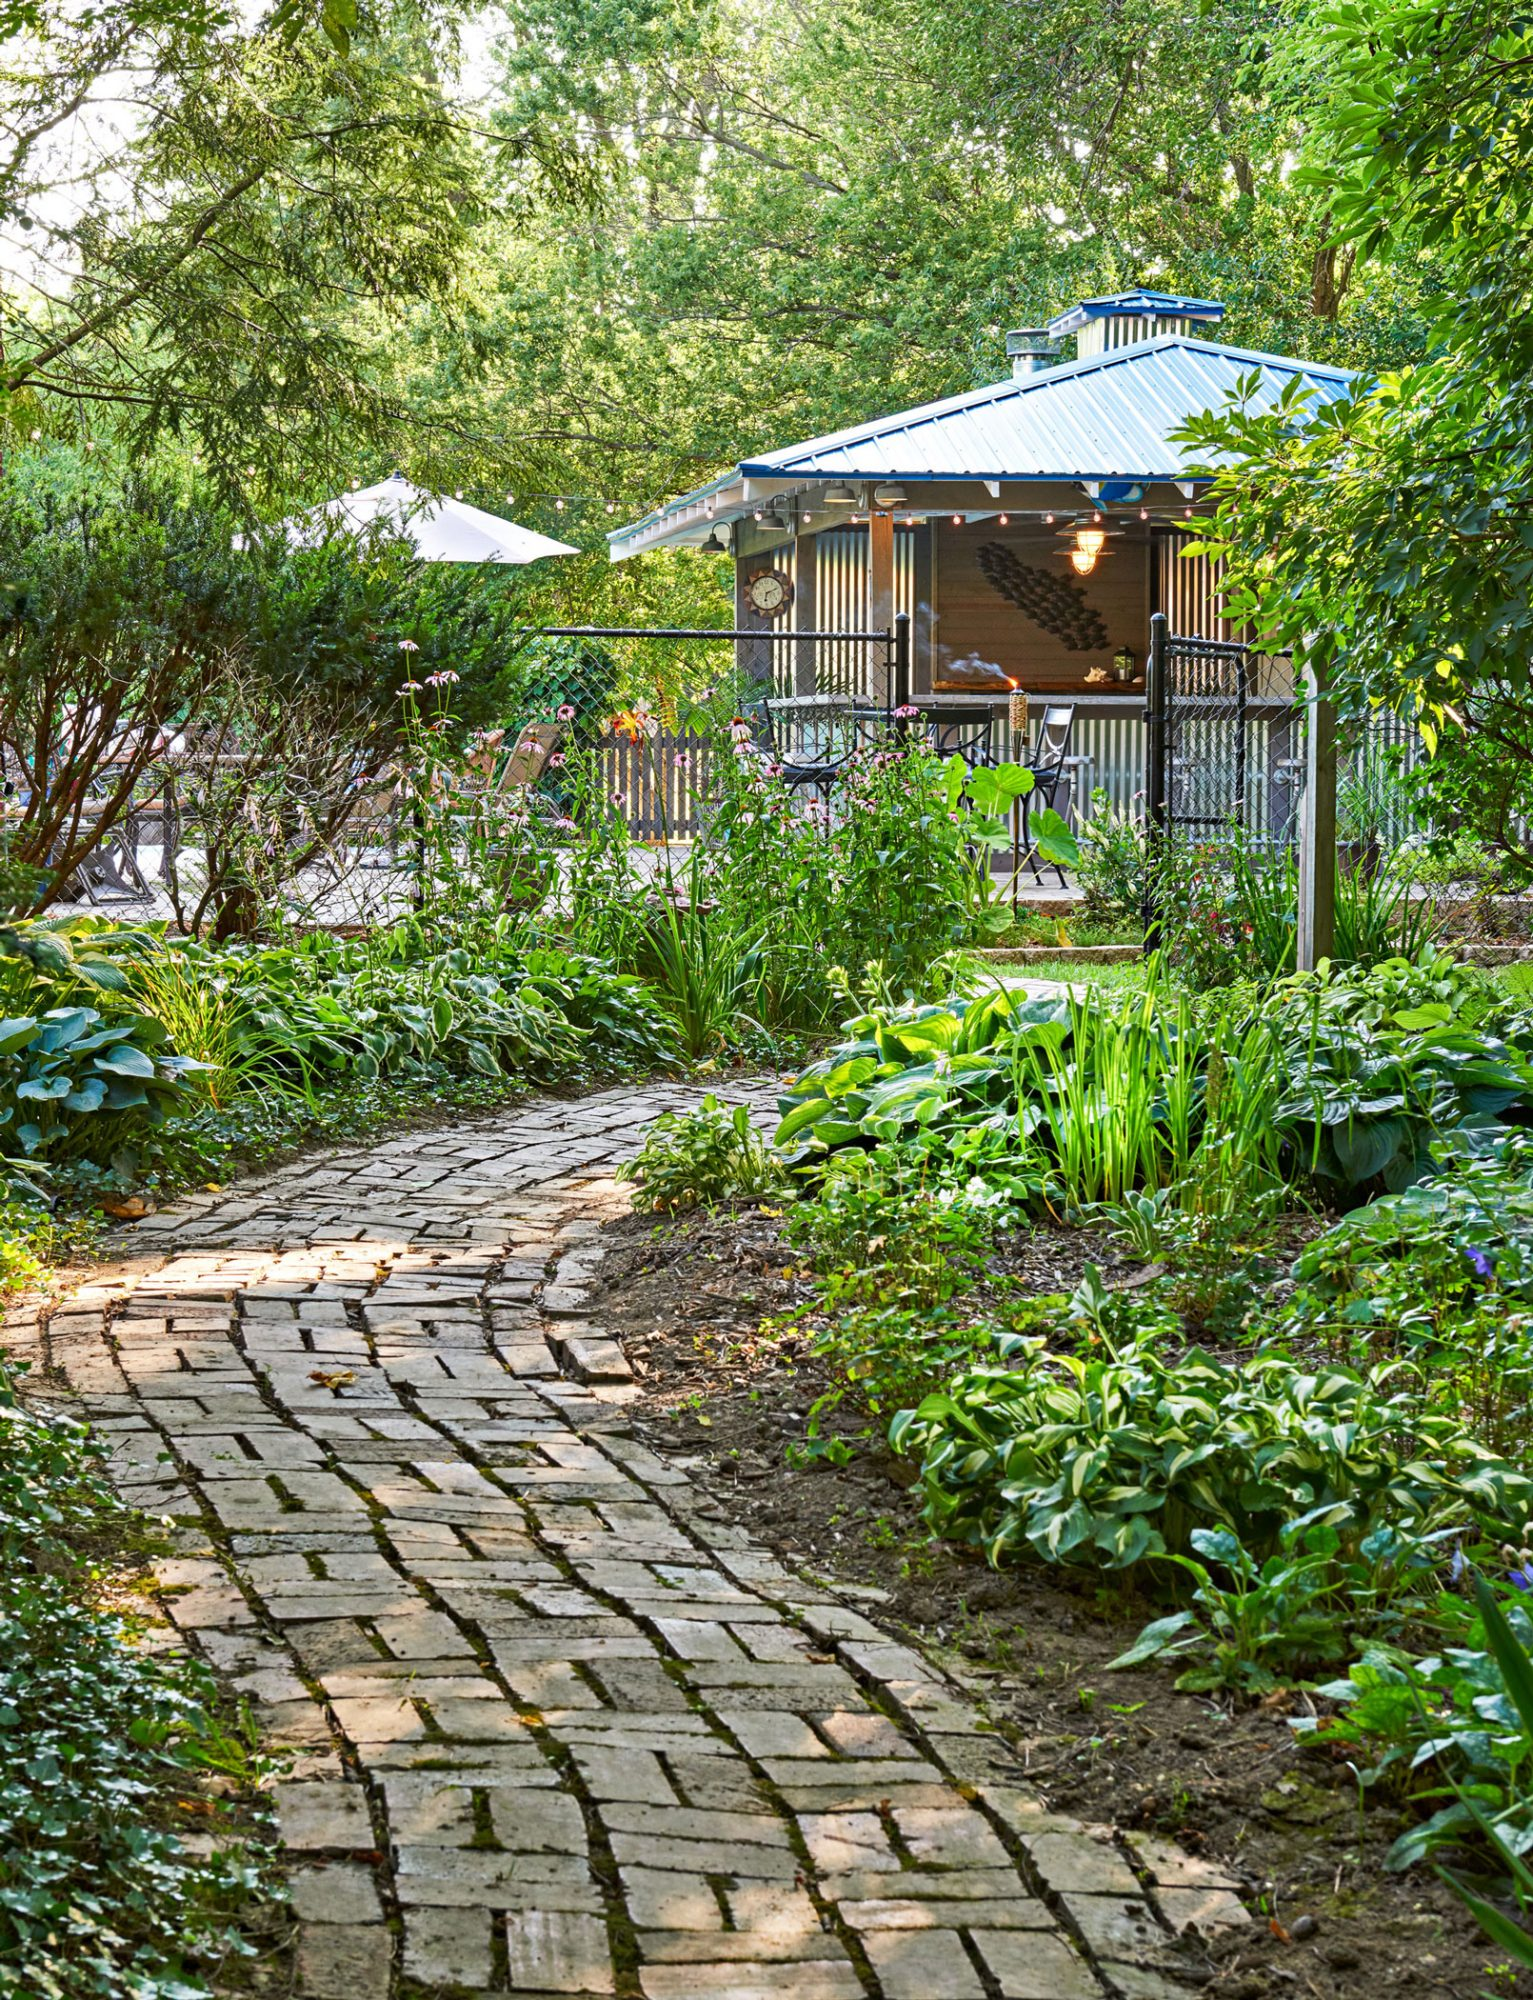 Hosta-lined path to pool house